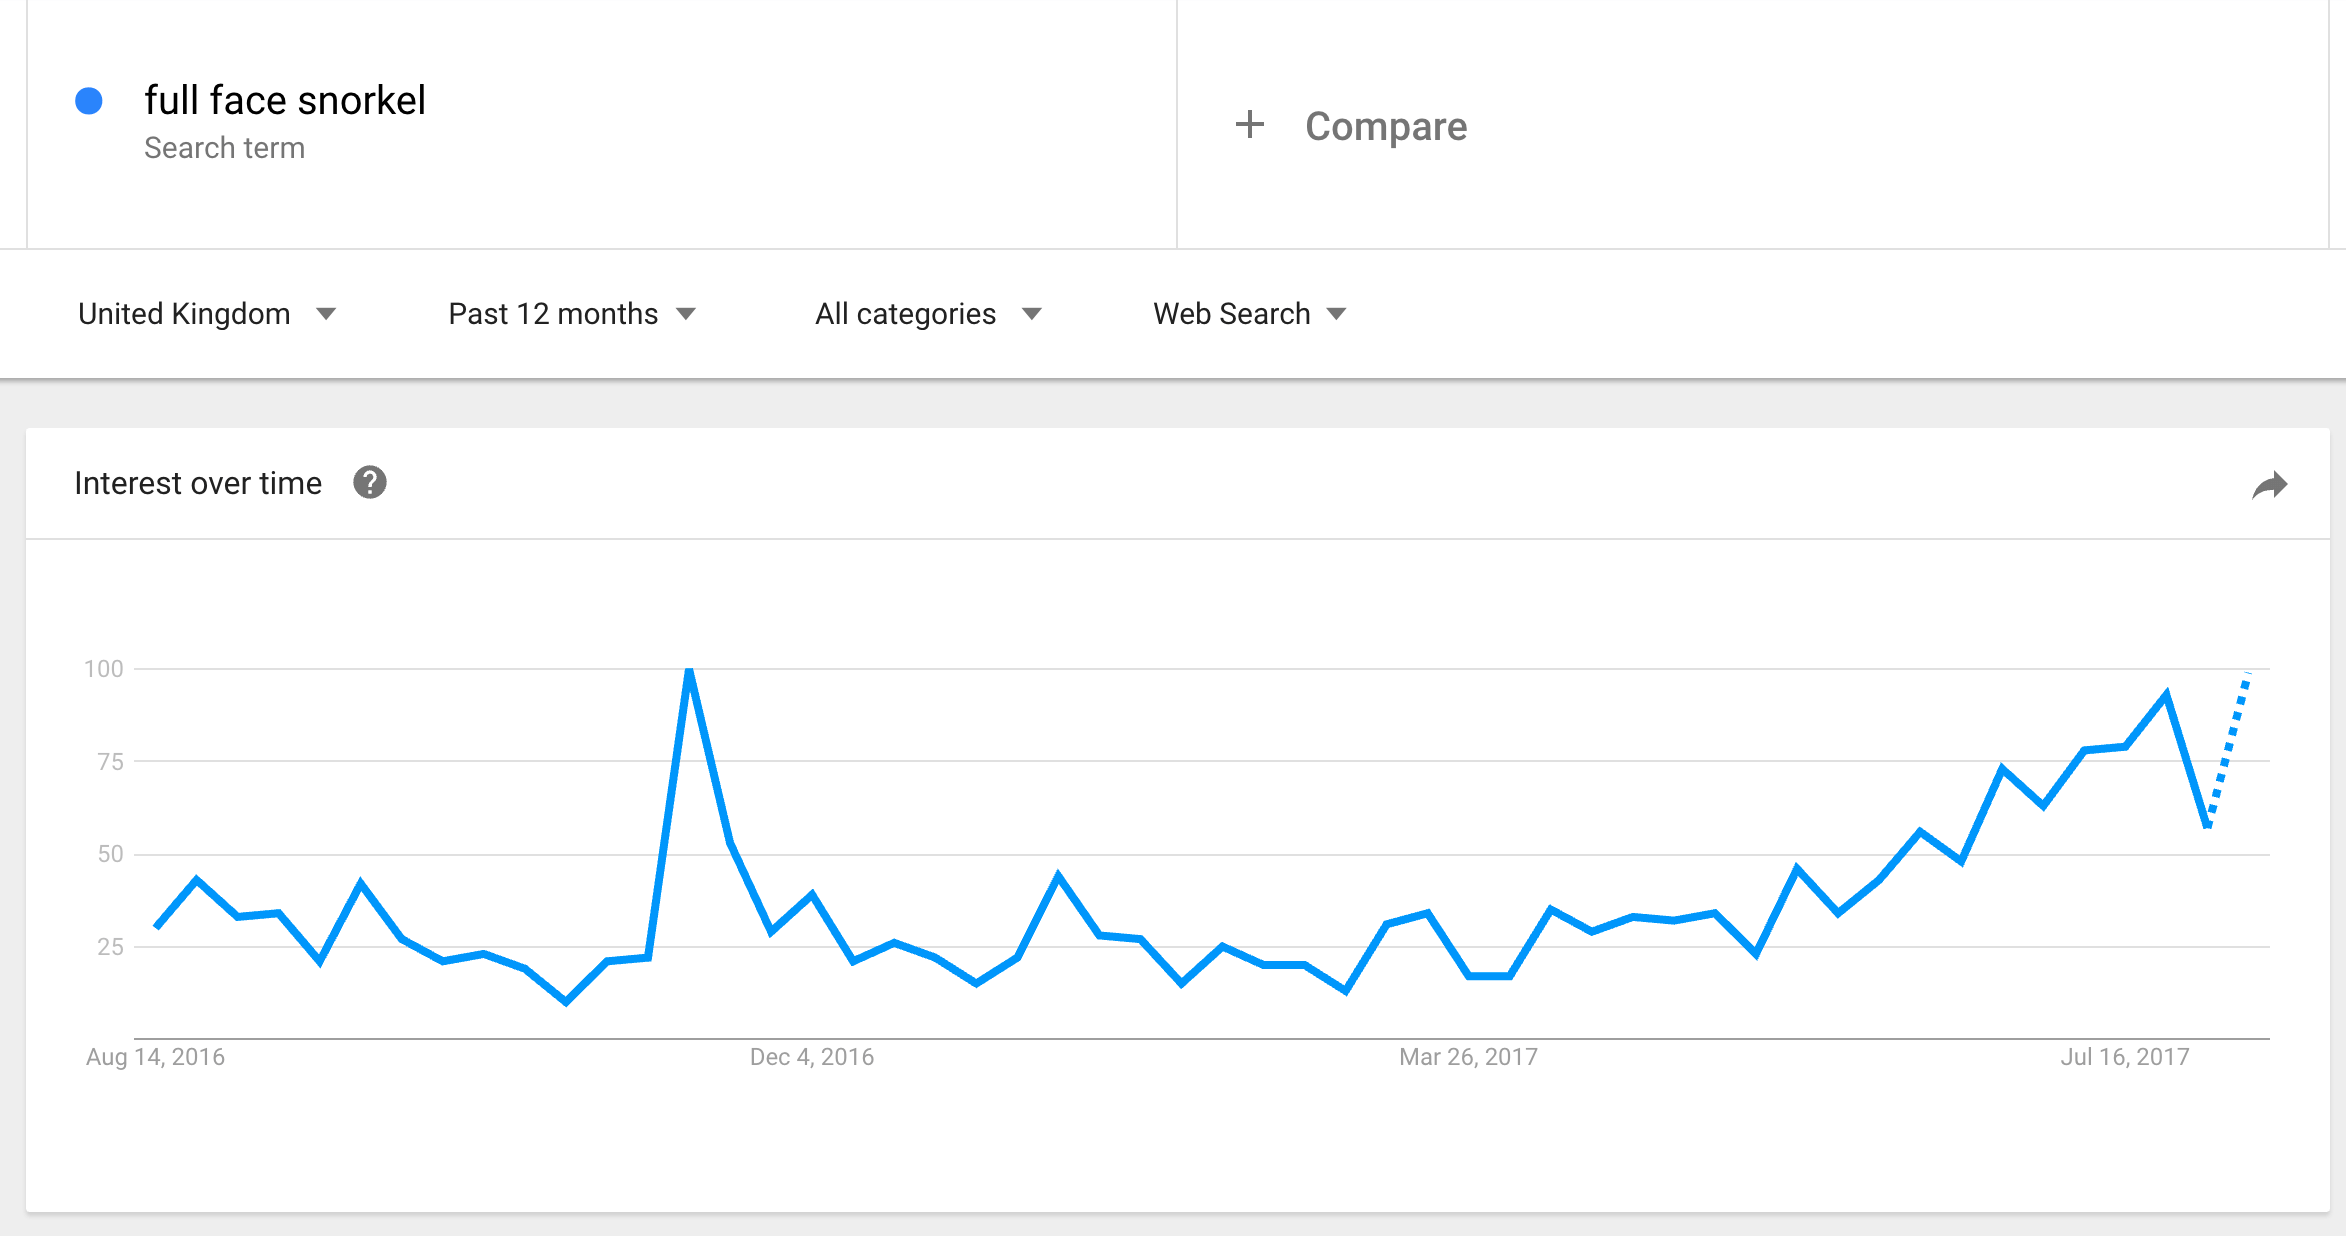 google trends full face snorkel